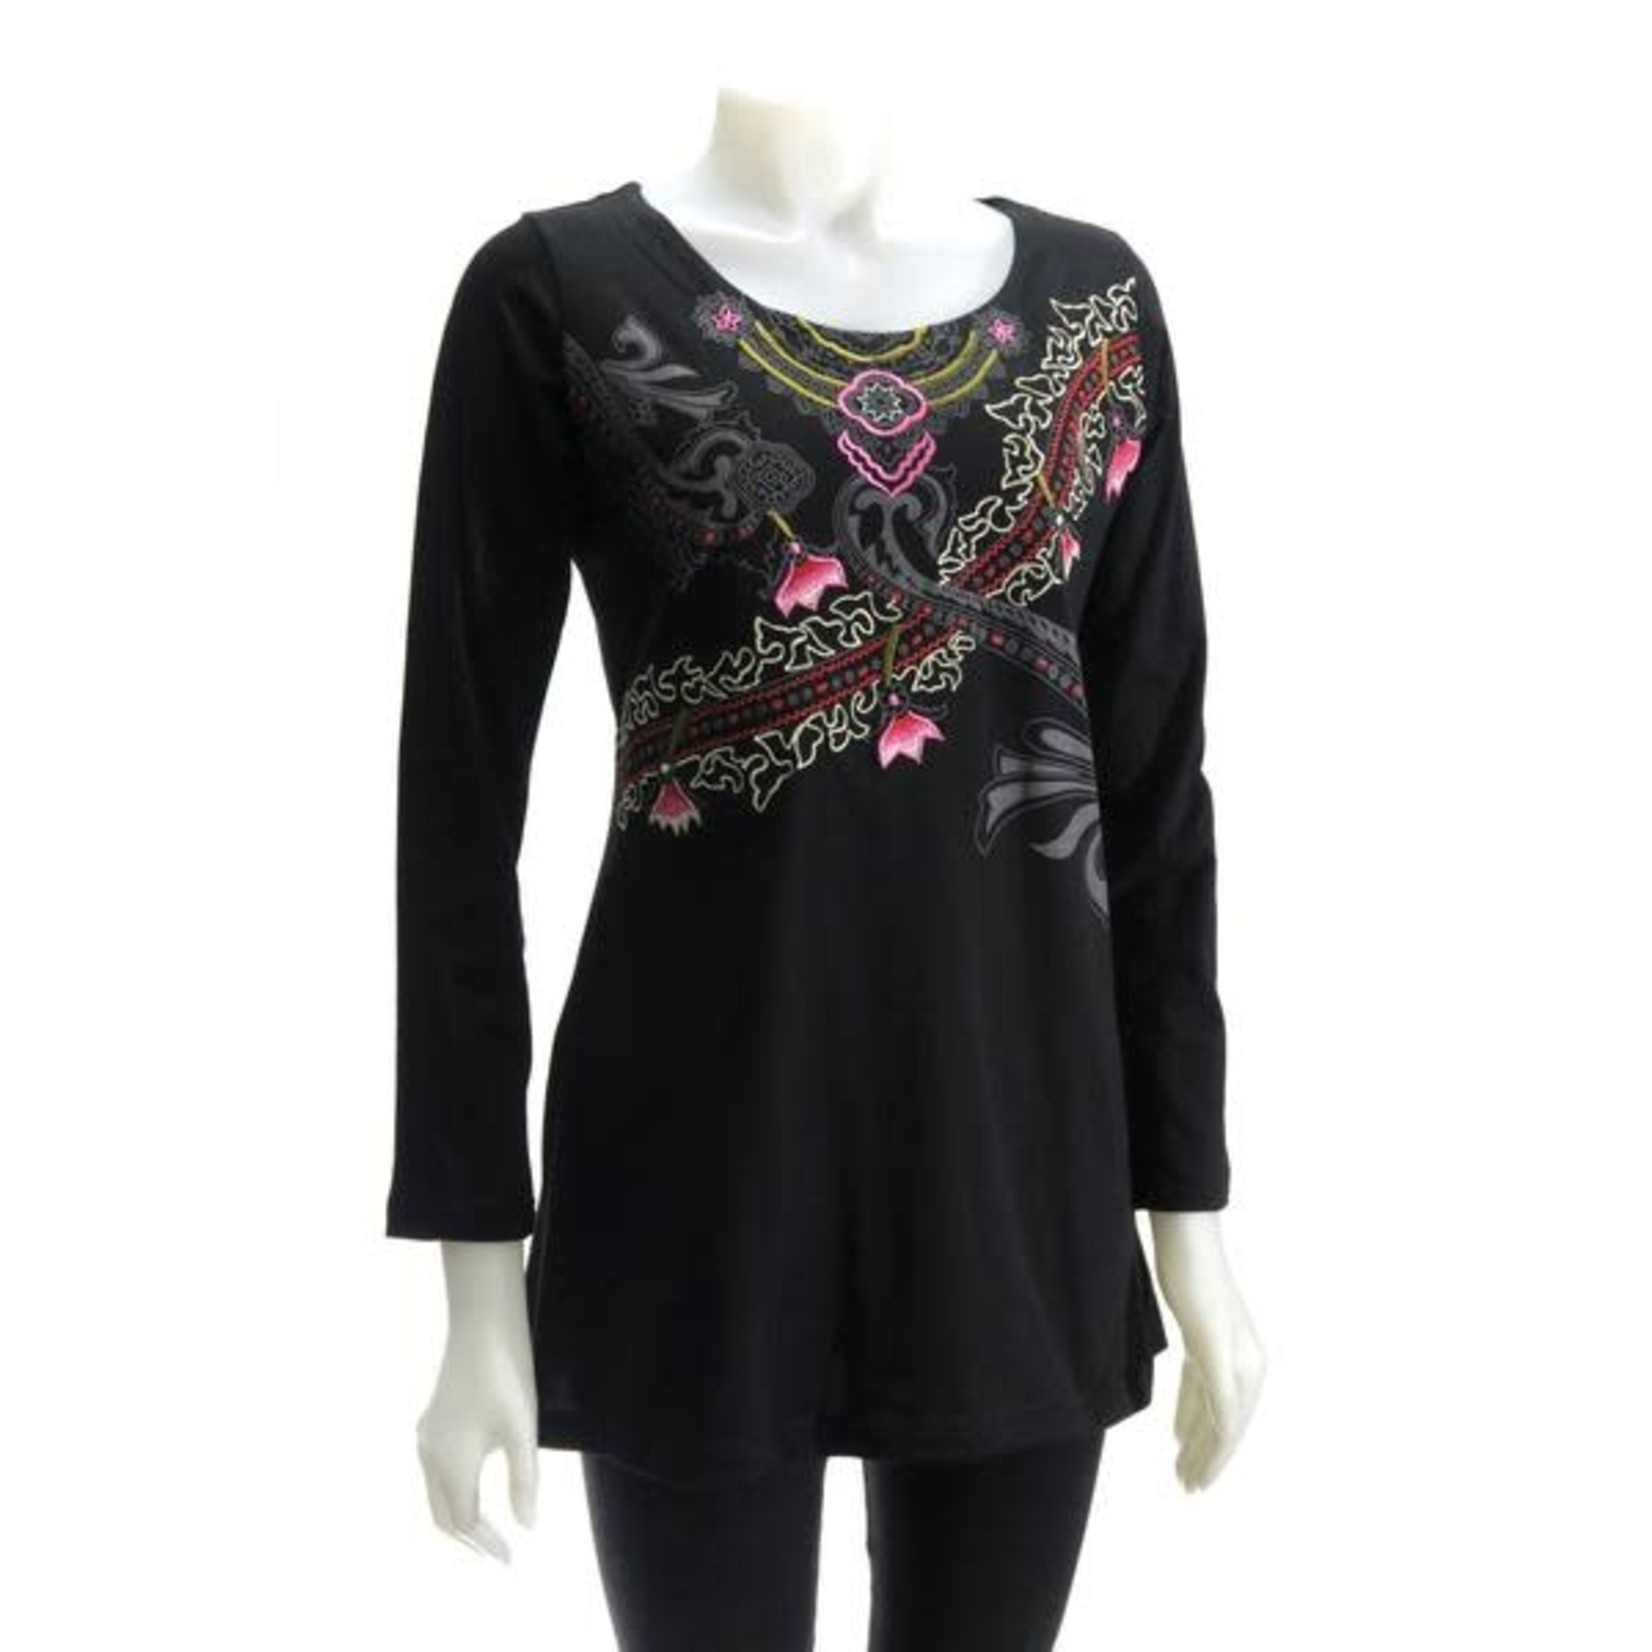 LEOPARDS AND ROSES RJ-T20159-BK PRINTED TUNIC